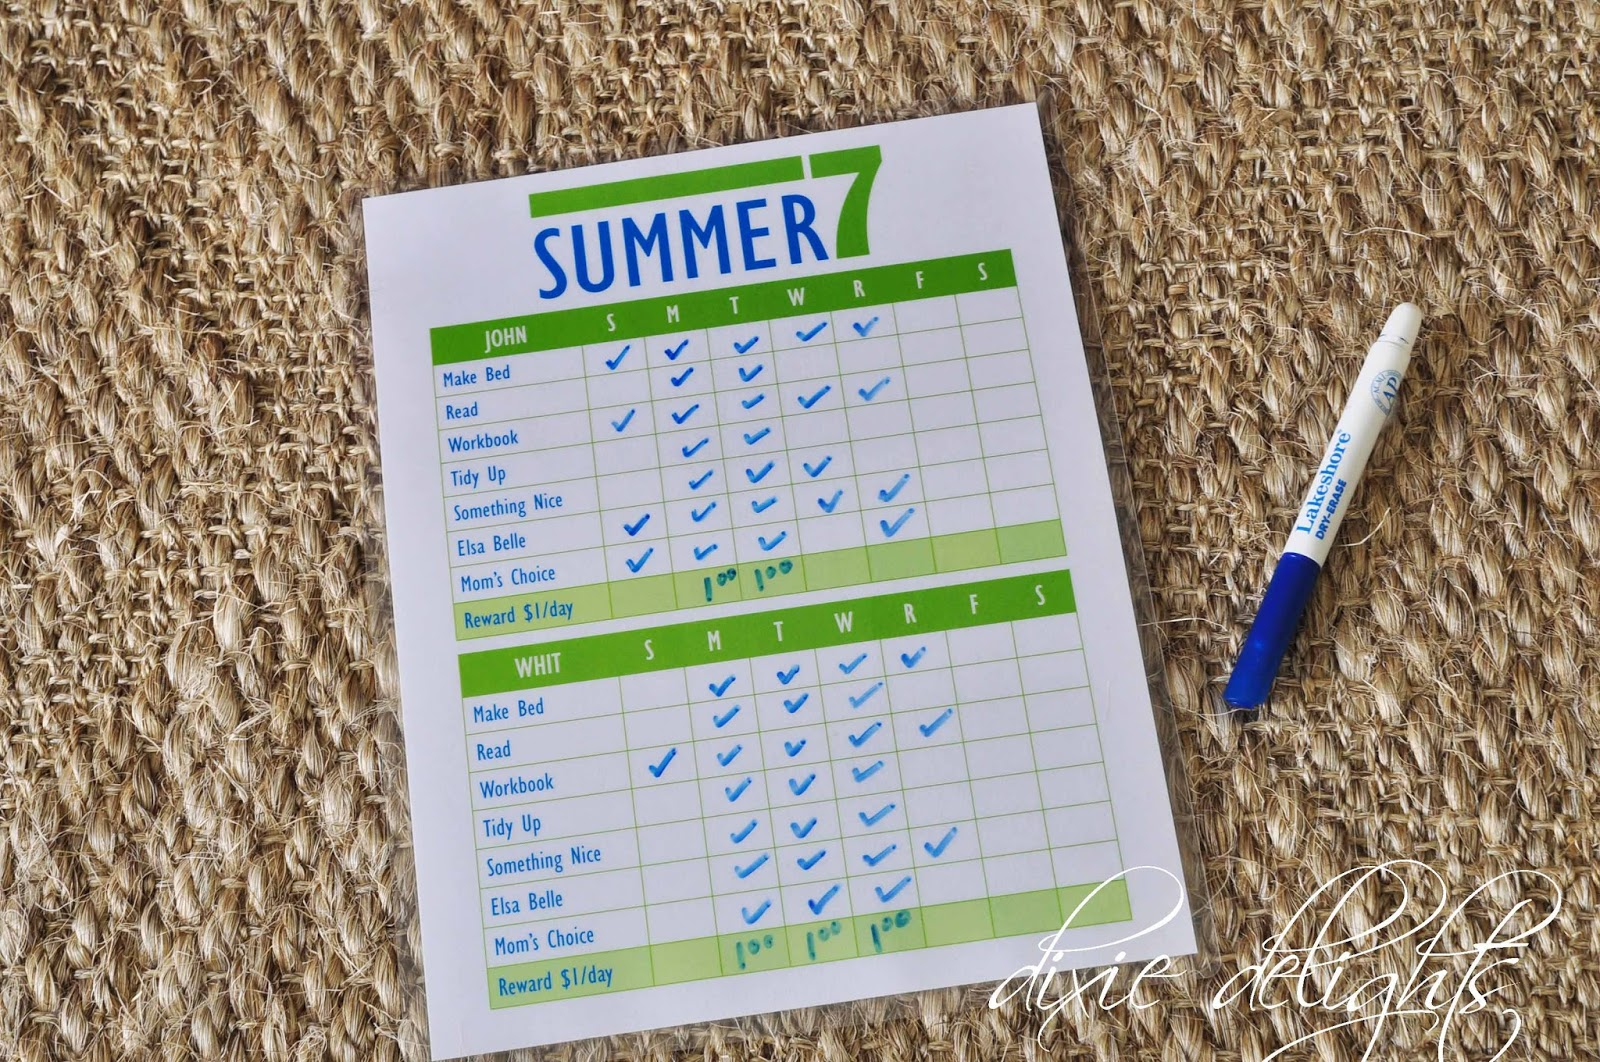 image about Have a Ball This Summer Free Printable referred to as Summer time 7 Cost-free Printable Dixie Delights